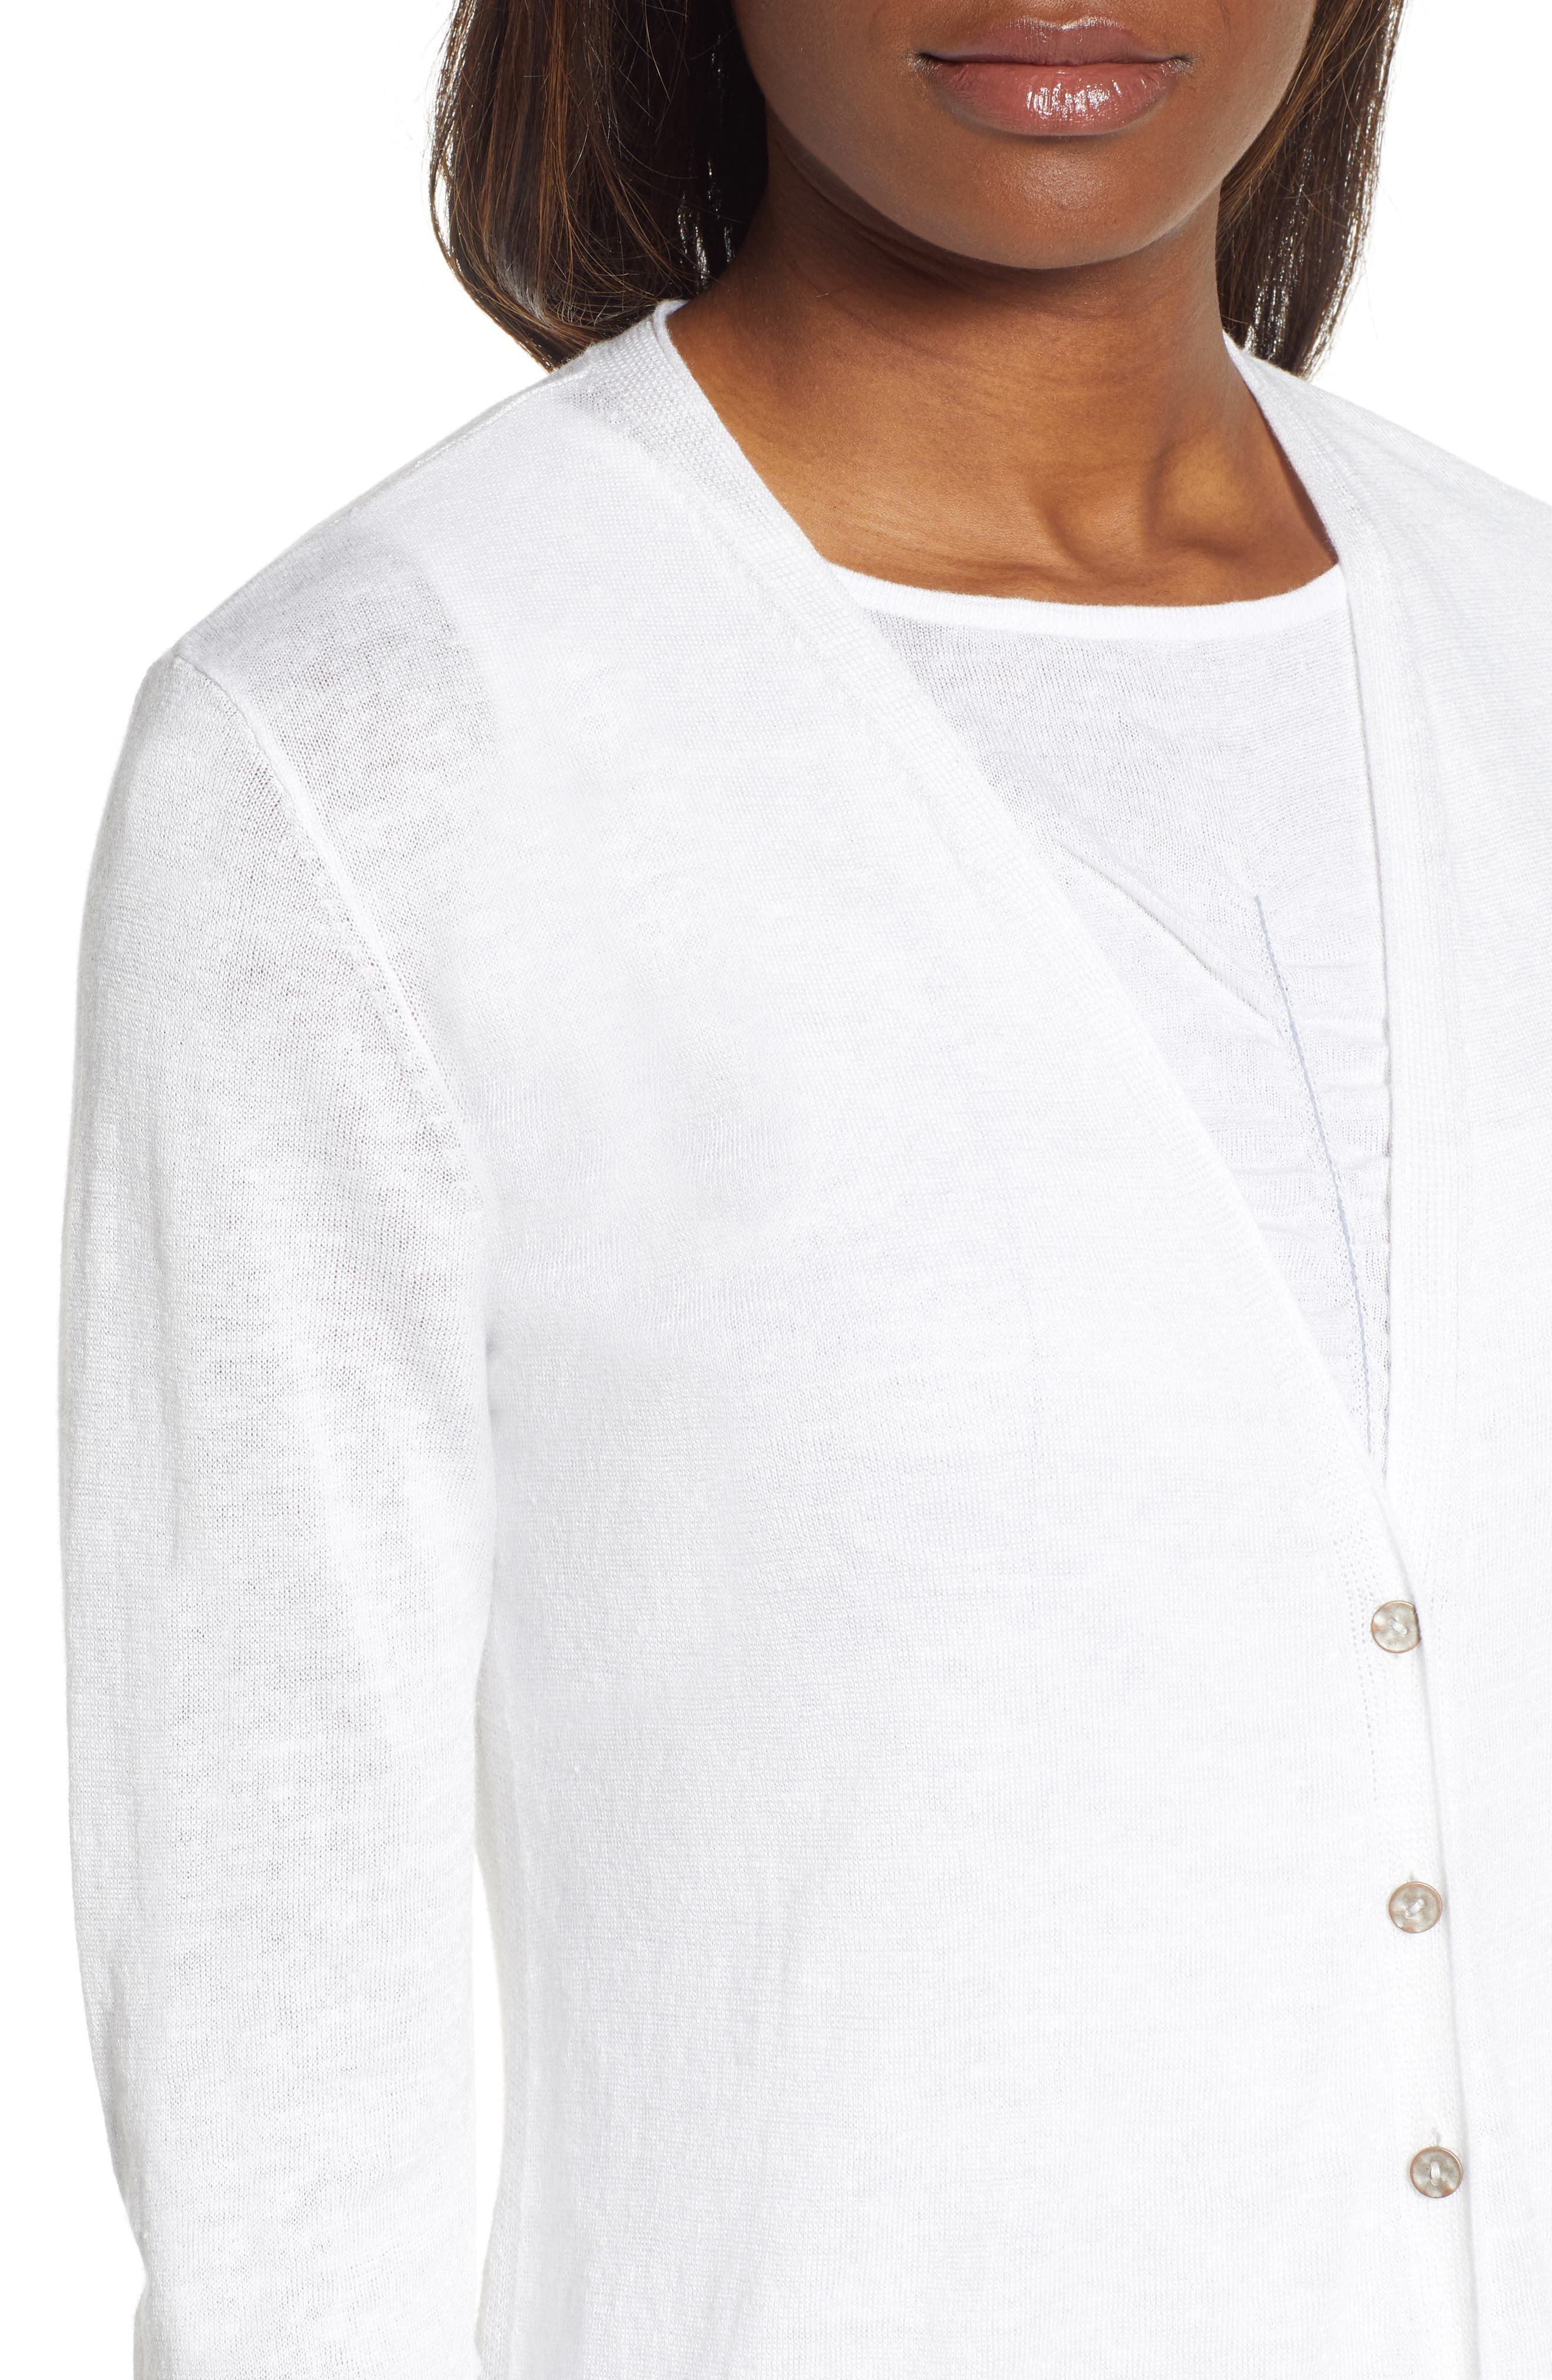 NIC+ZOE, Ruched Sleeve Cardigan, Alternate thumbnail 4, color, PAPER WHITE